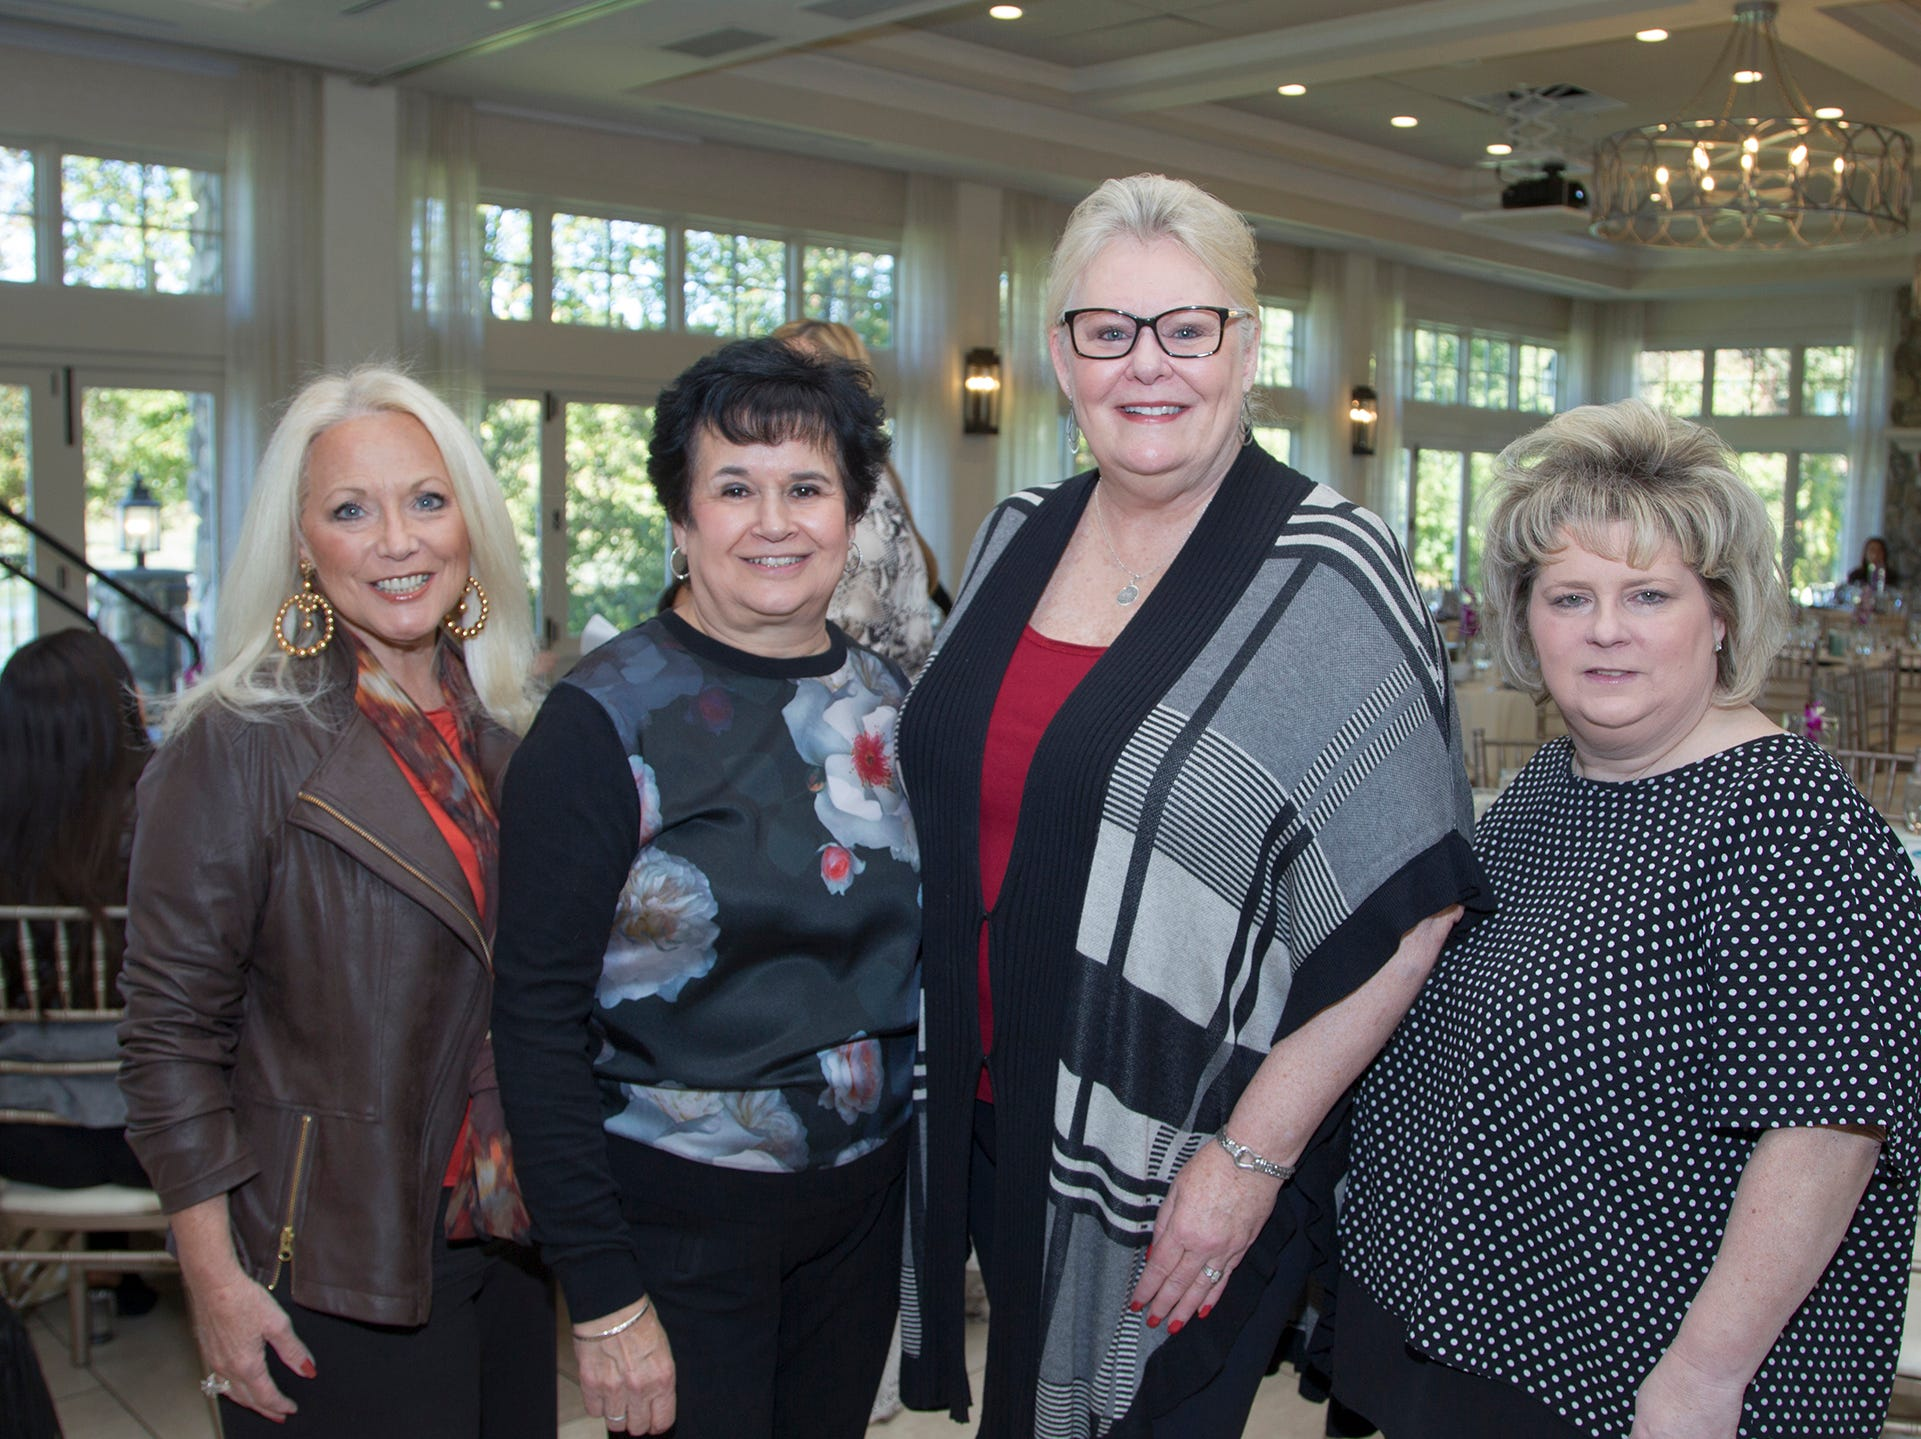 Cathy Teitel, Ivana D'Agastino, Lynne Bigica, Linda Cennerazzo. Spring Lake Toys Foundation held its 3rd annual fundraising gala luncheon at Indian Trail Club in Franklin Lakes. The luncheon fundraiser raises funds for children with illnesses. 10/18/2018